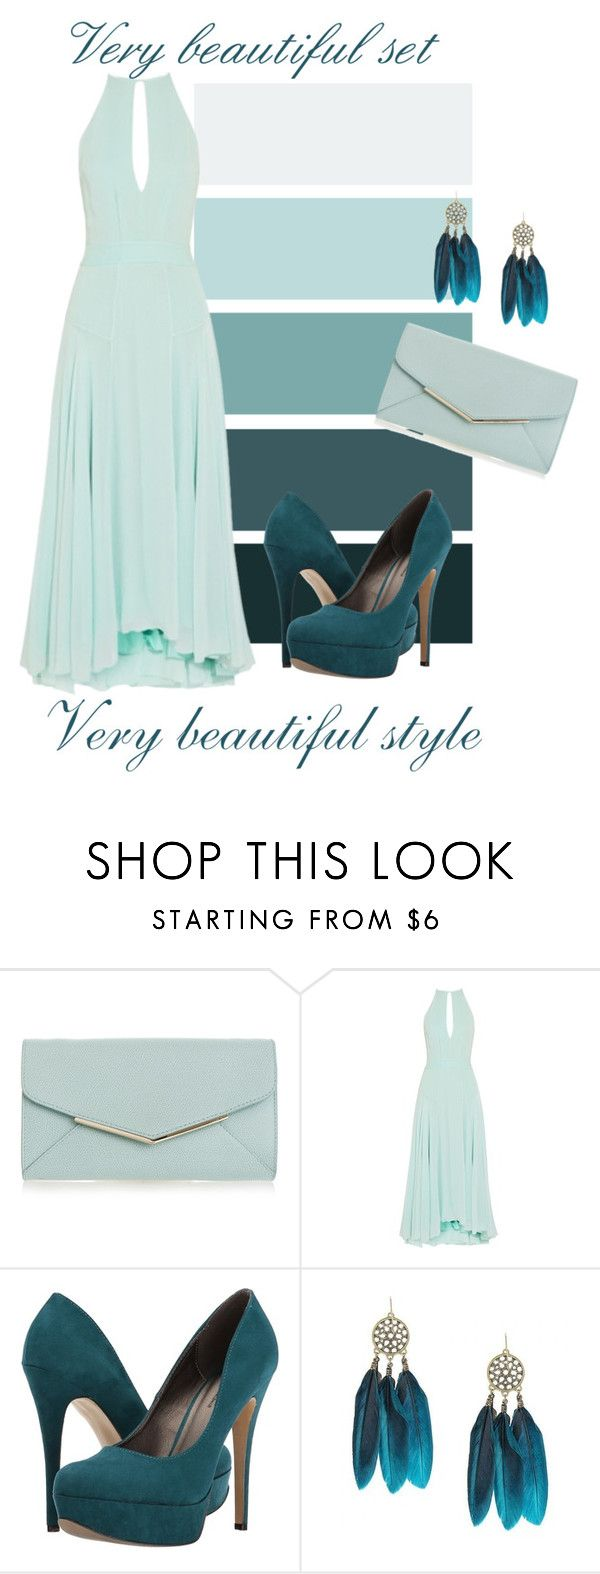 """""""Very beautiful set"""" by alina-zhylchuk ❤ liked on Polyvore featuring Furla and Michael Antonio"""